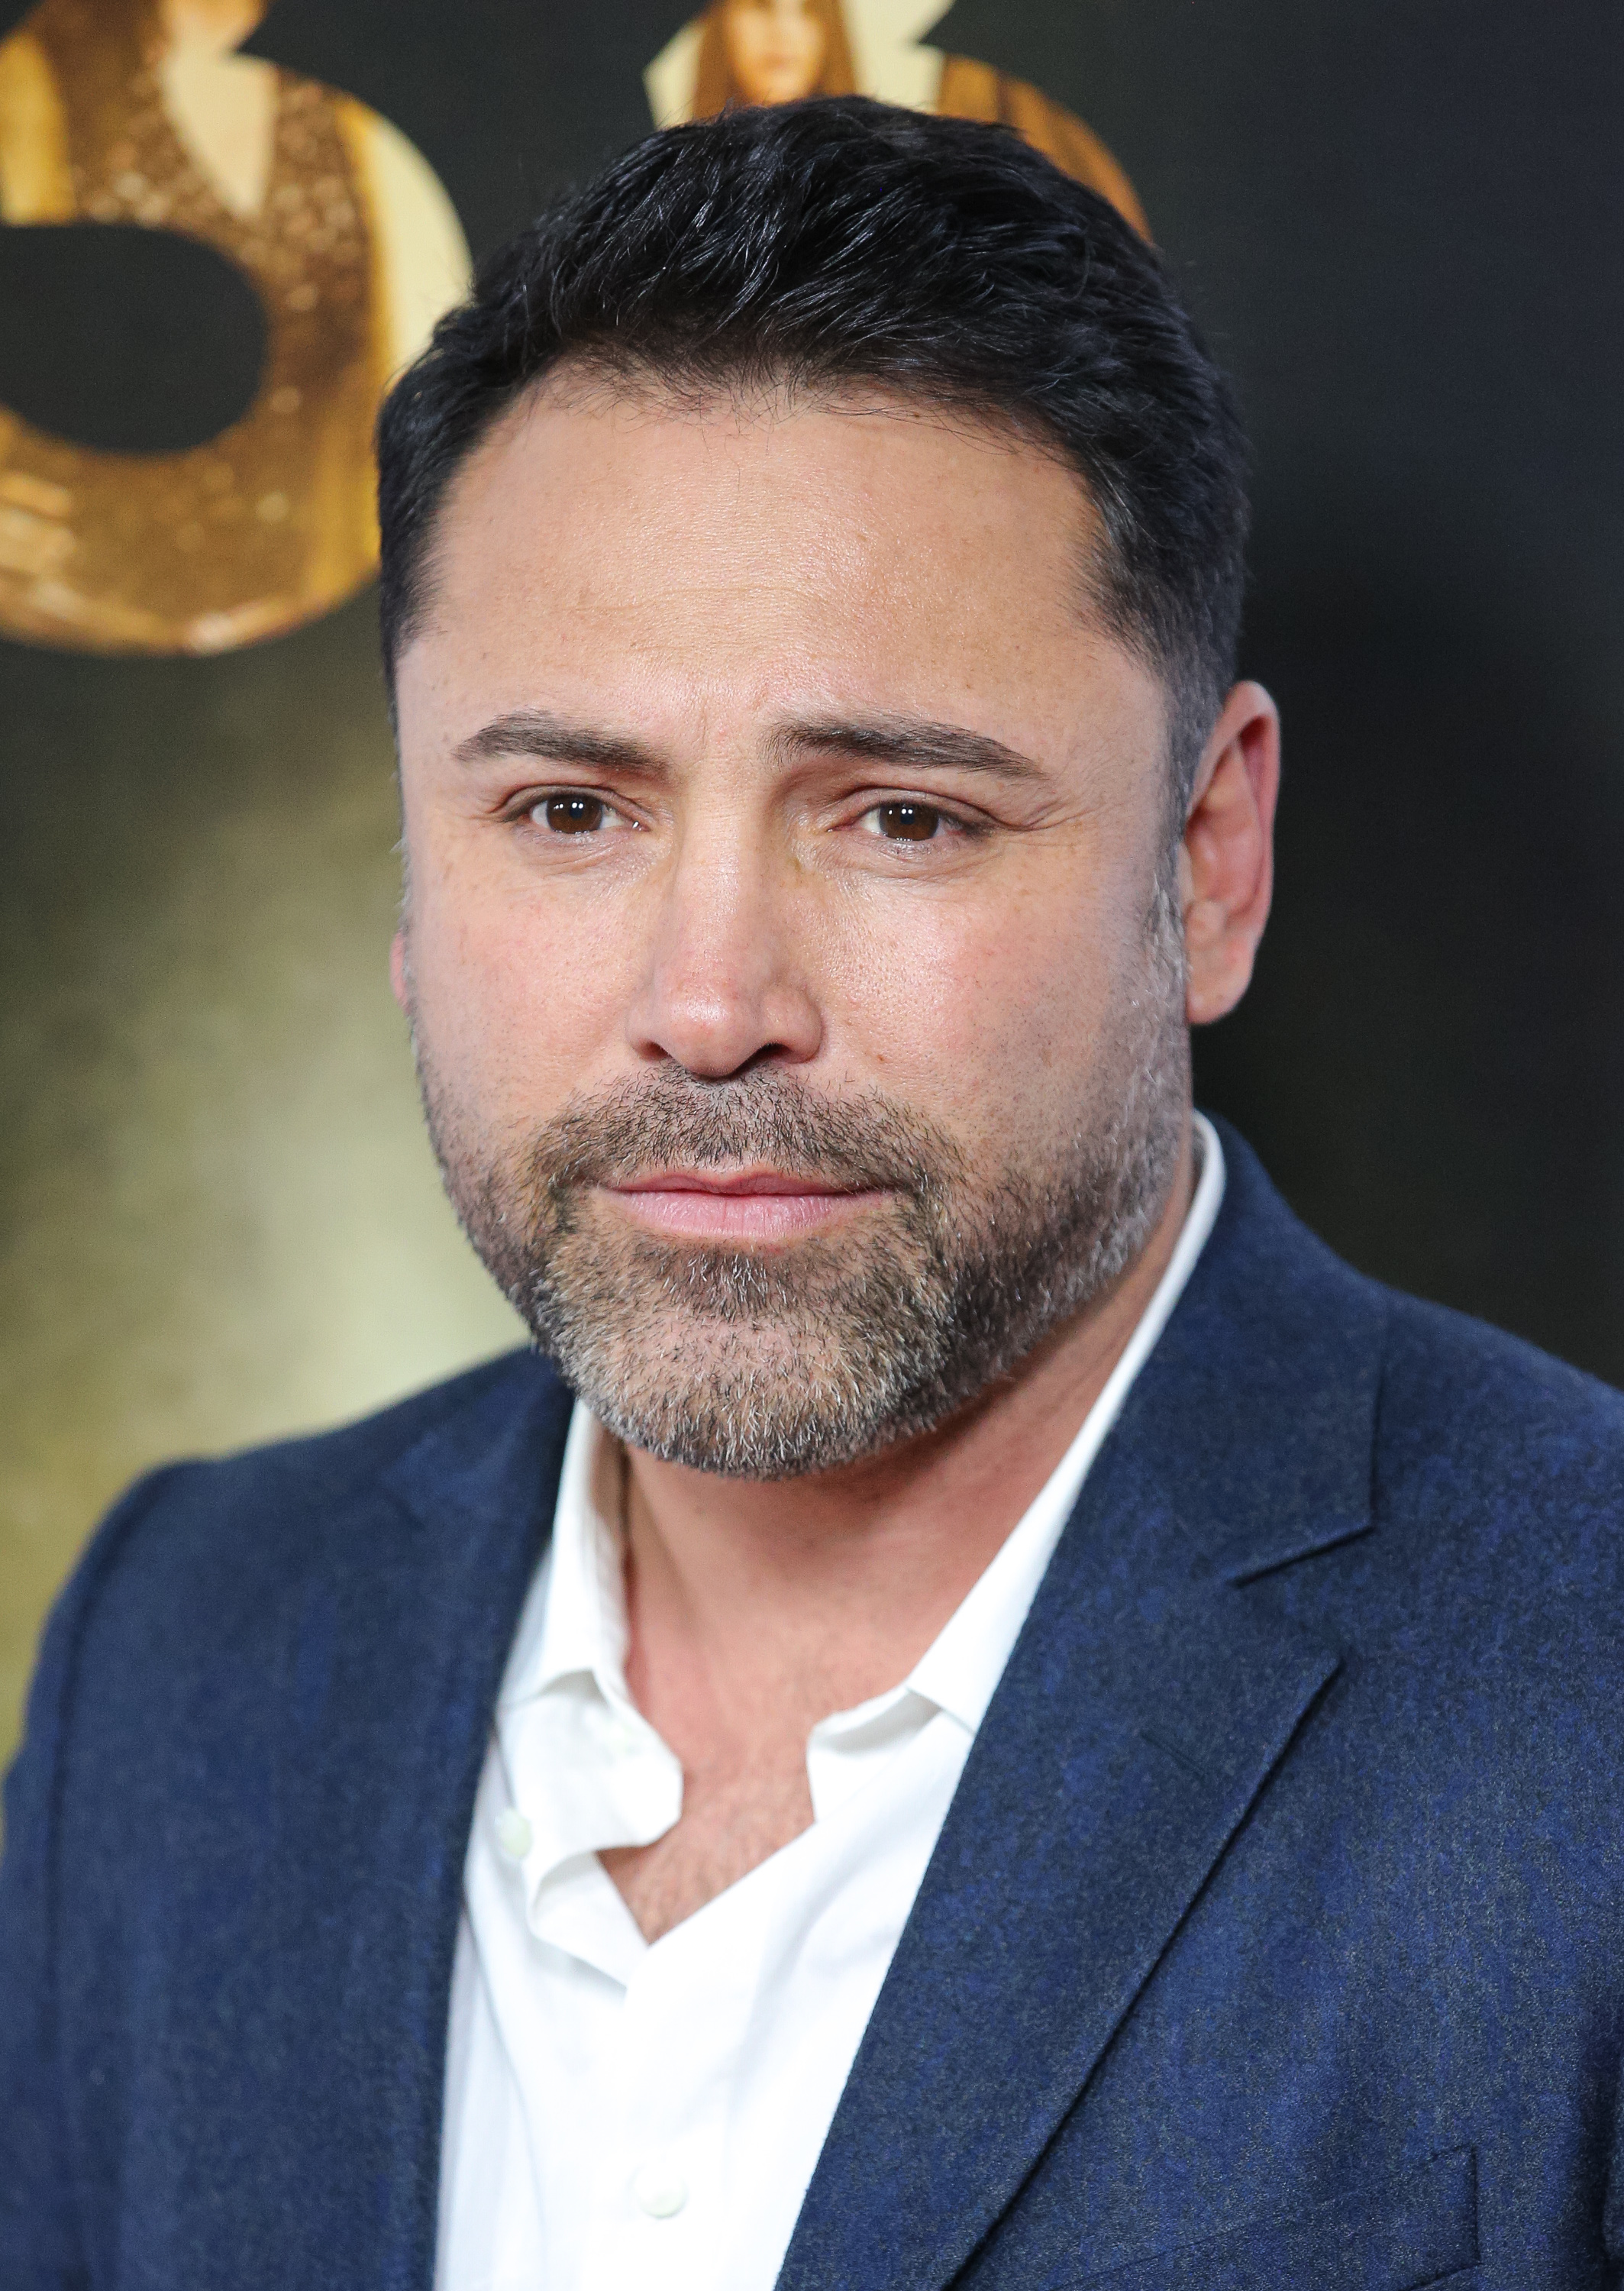 Former professional boxer Oscar De La Hoya attends the Centerpiece Gala premiere of Alcon Entertainment's 'The 33' at TCL Chinese Theatre on November 9, 2015 in Hollywood, California.